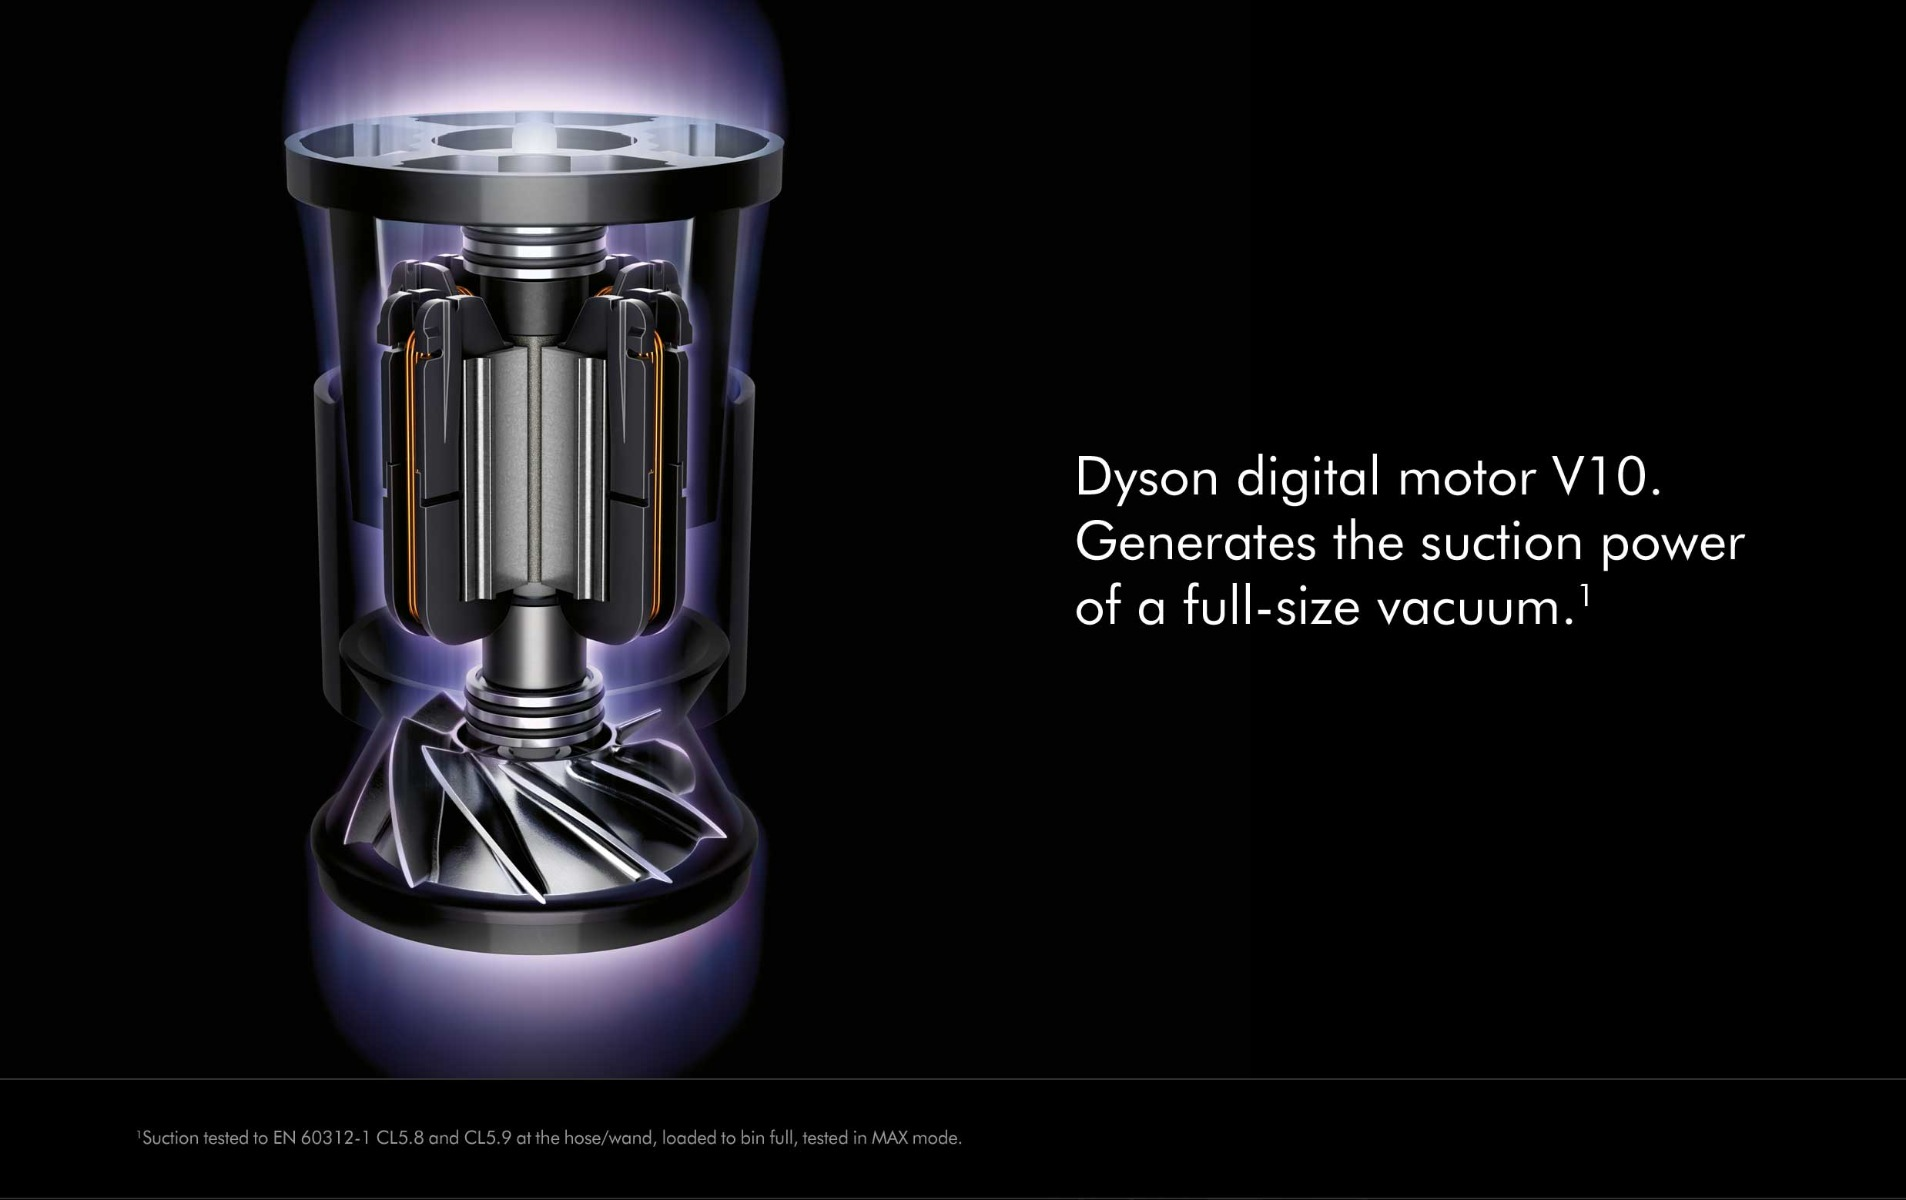 V10 digital motor, generates the suction power of a full size vacuum